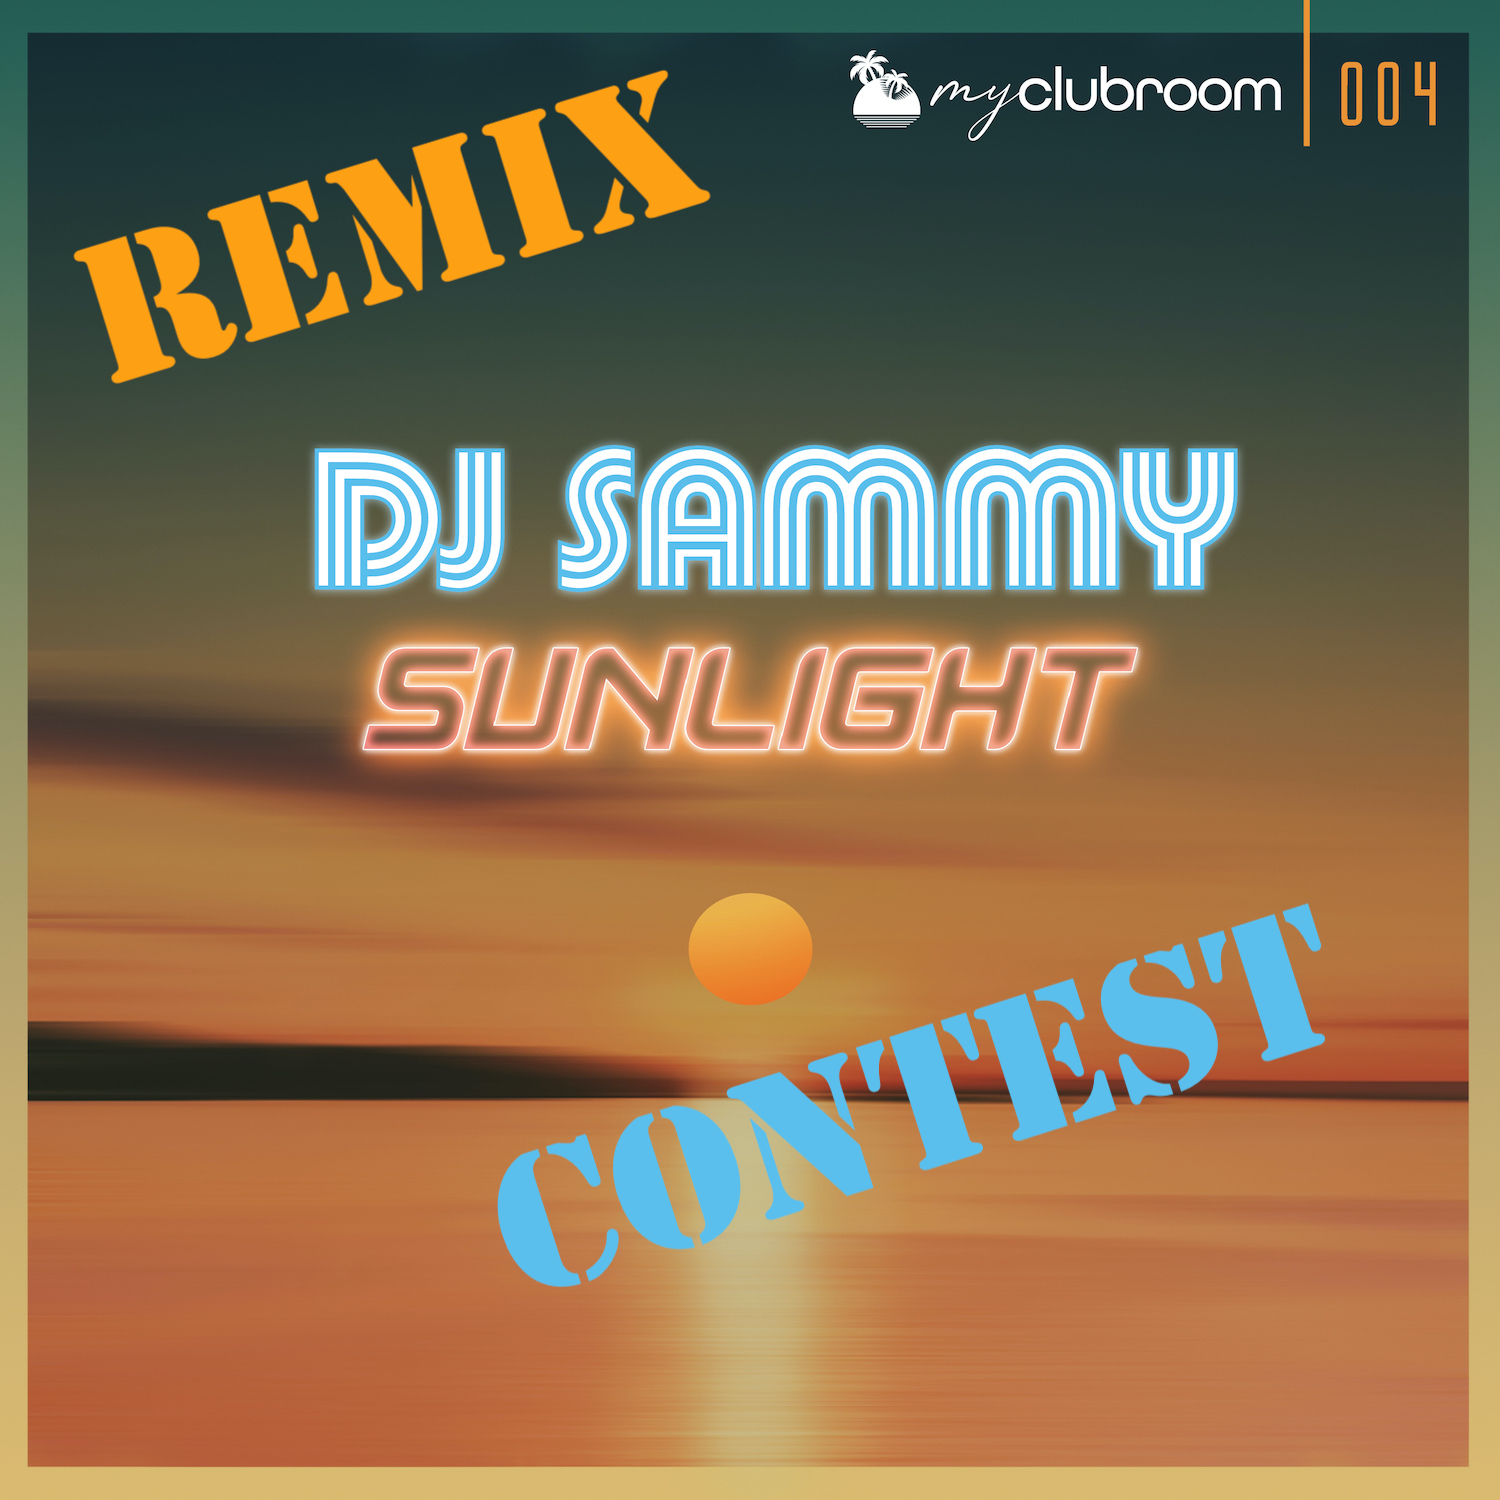 Cover DJ Sammy Sunlight 1500x1500 Remix Contest